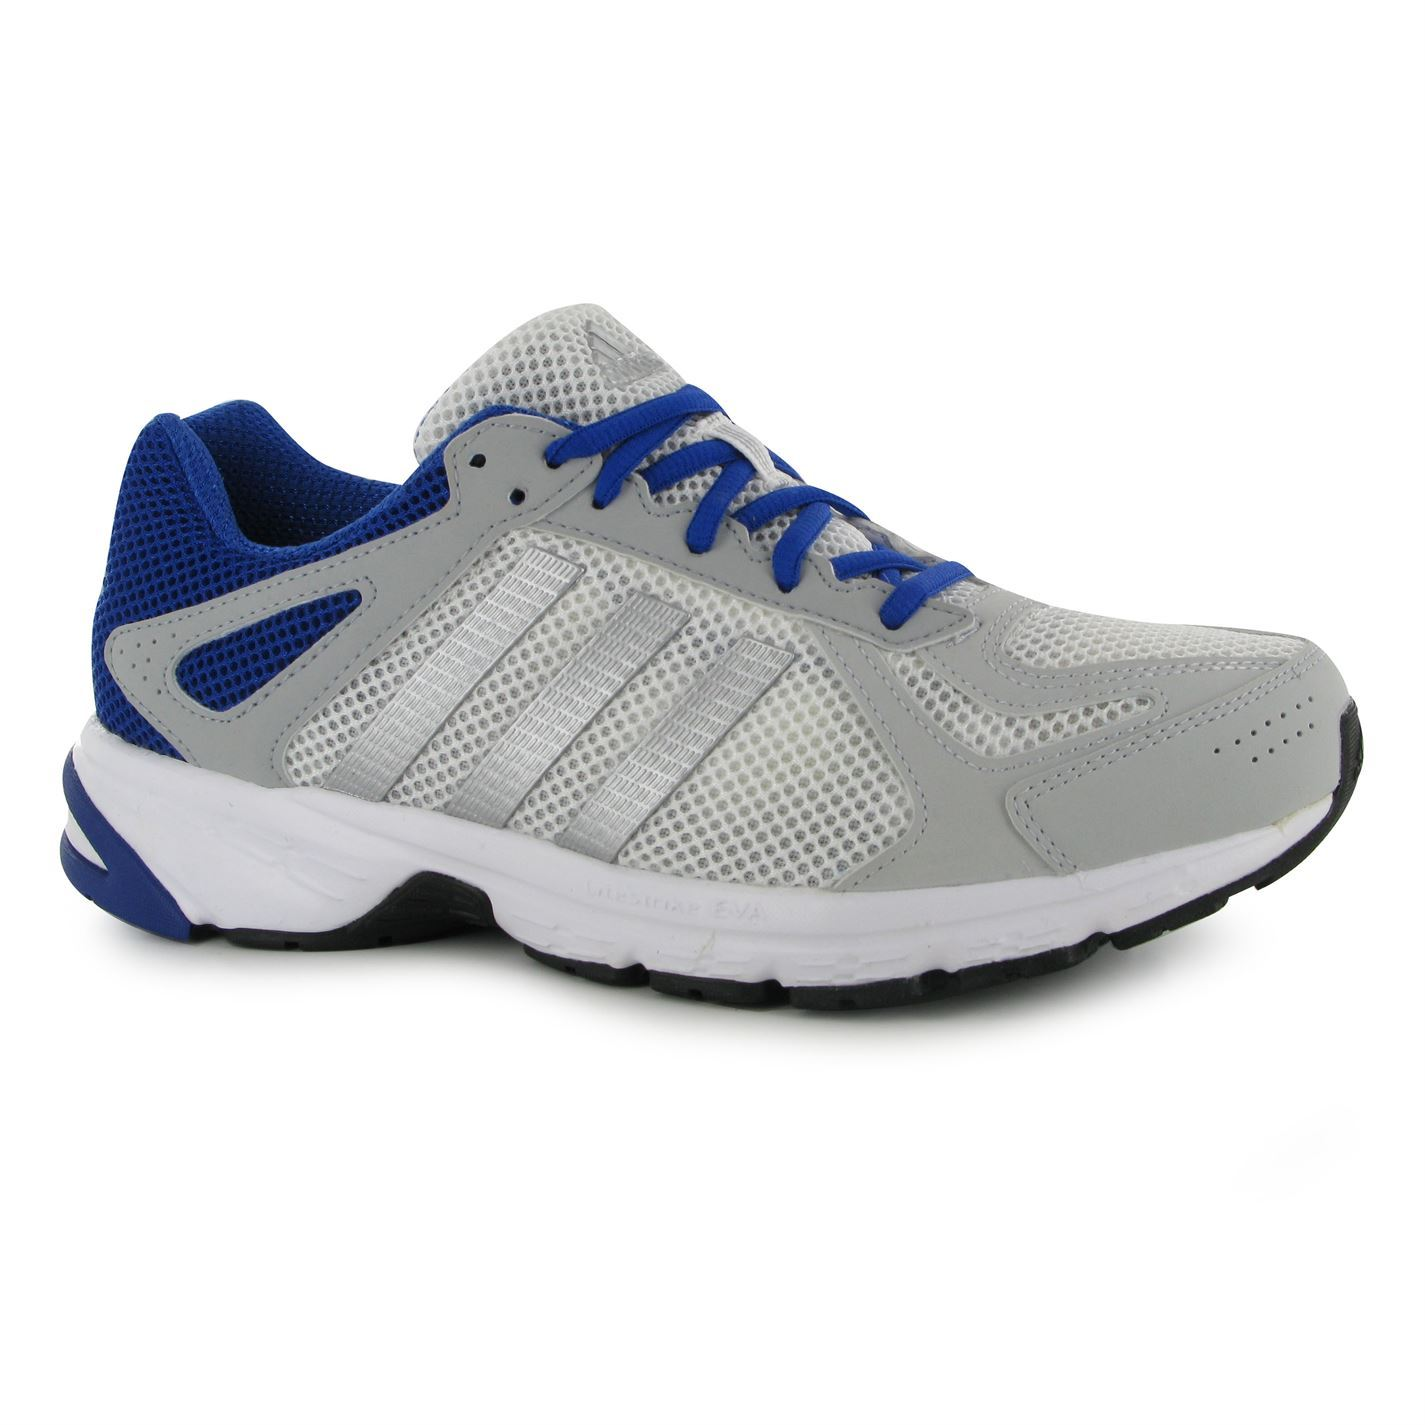 adidas running shoes for men. adidas duramo 55 running shoes mens white/silver/blue fitness trainers sneakers for men